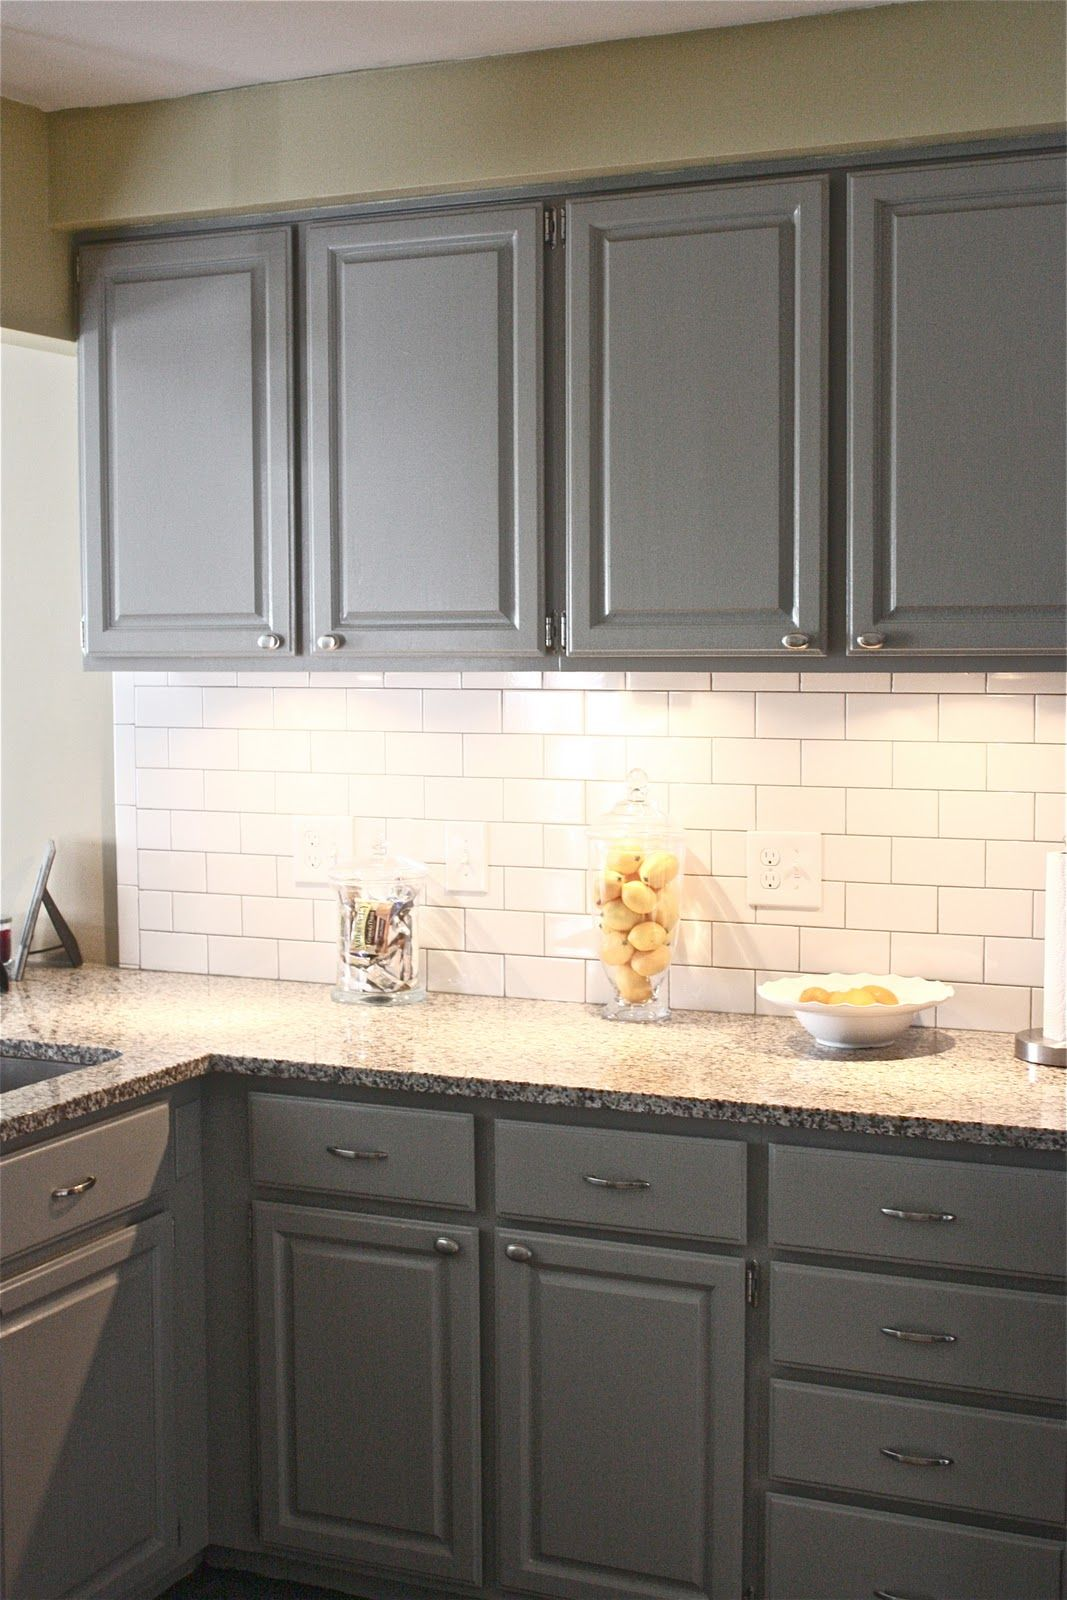 Painting Floor Tiles In Kitchen White Cabinets Corian Countertops With Tile Floor Tile